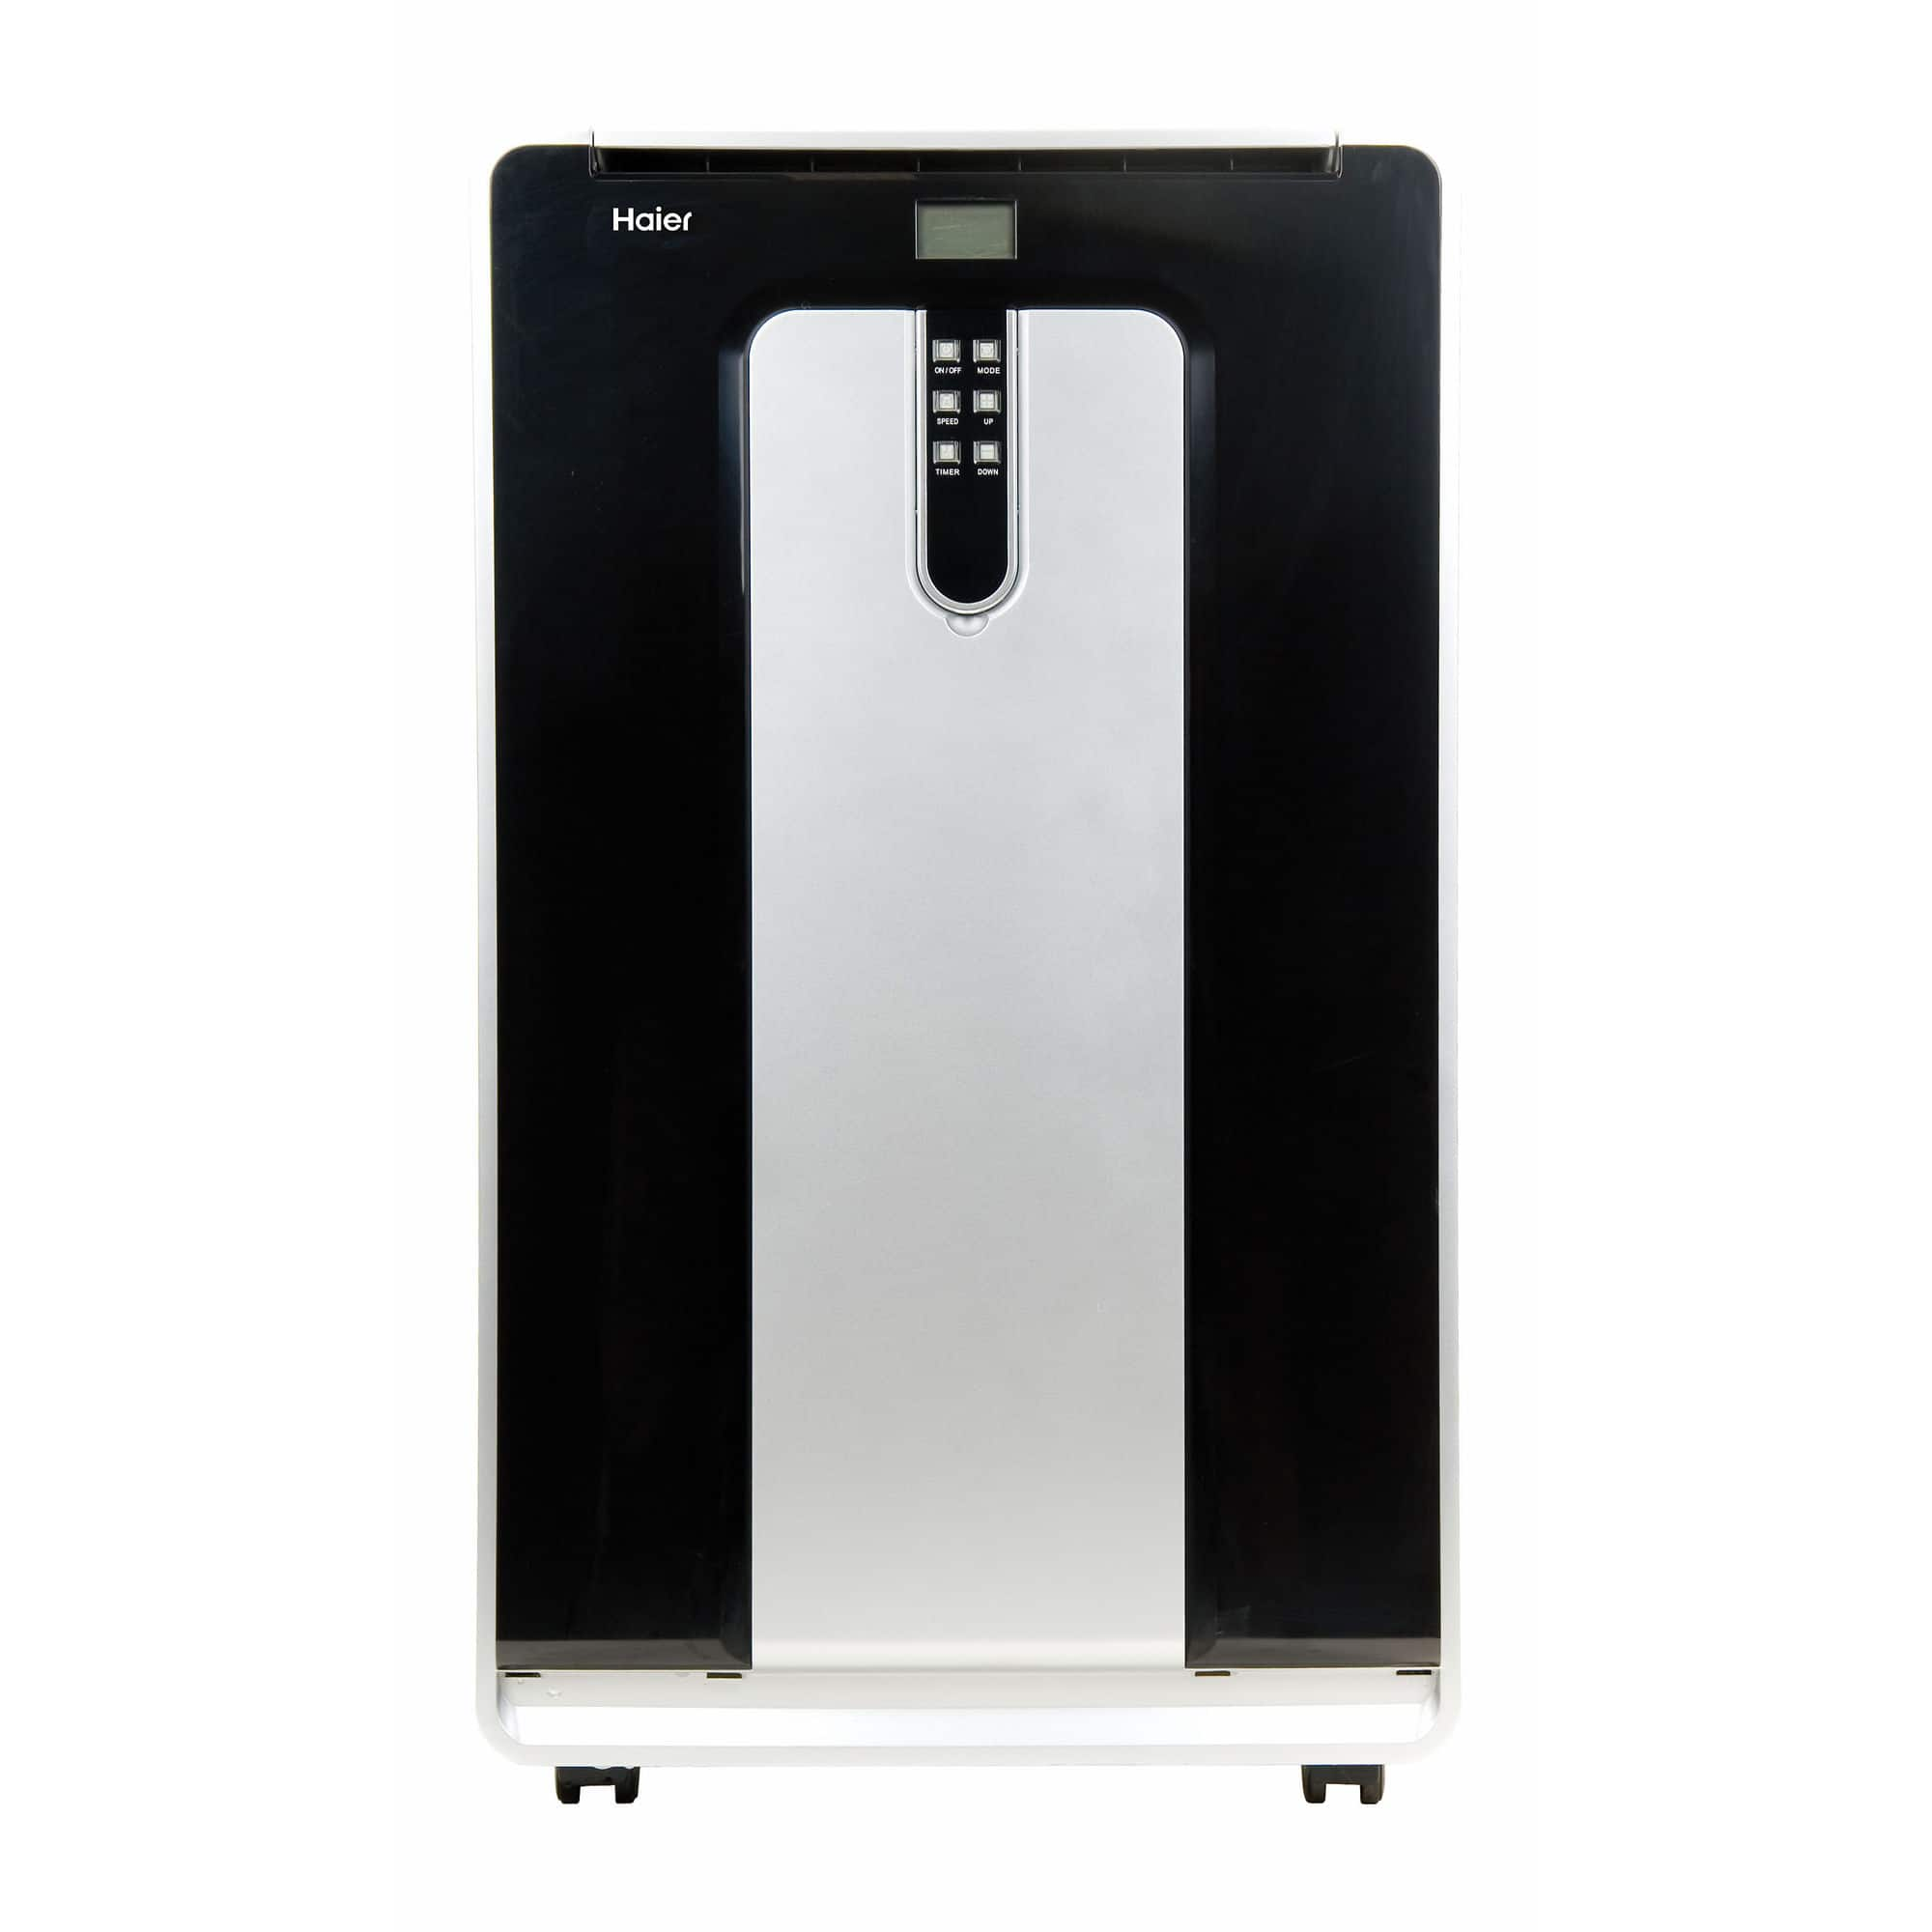 Haier 13,500-BTU Portable Air Conditioner with Heat $299.99 + FS/ In store Pickup @ BJ's